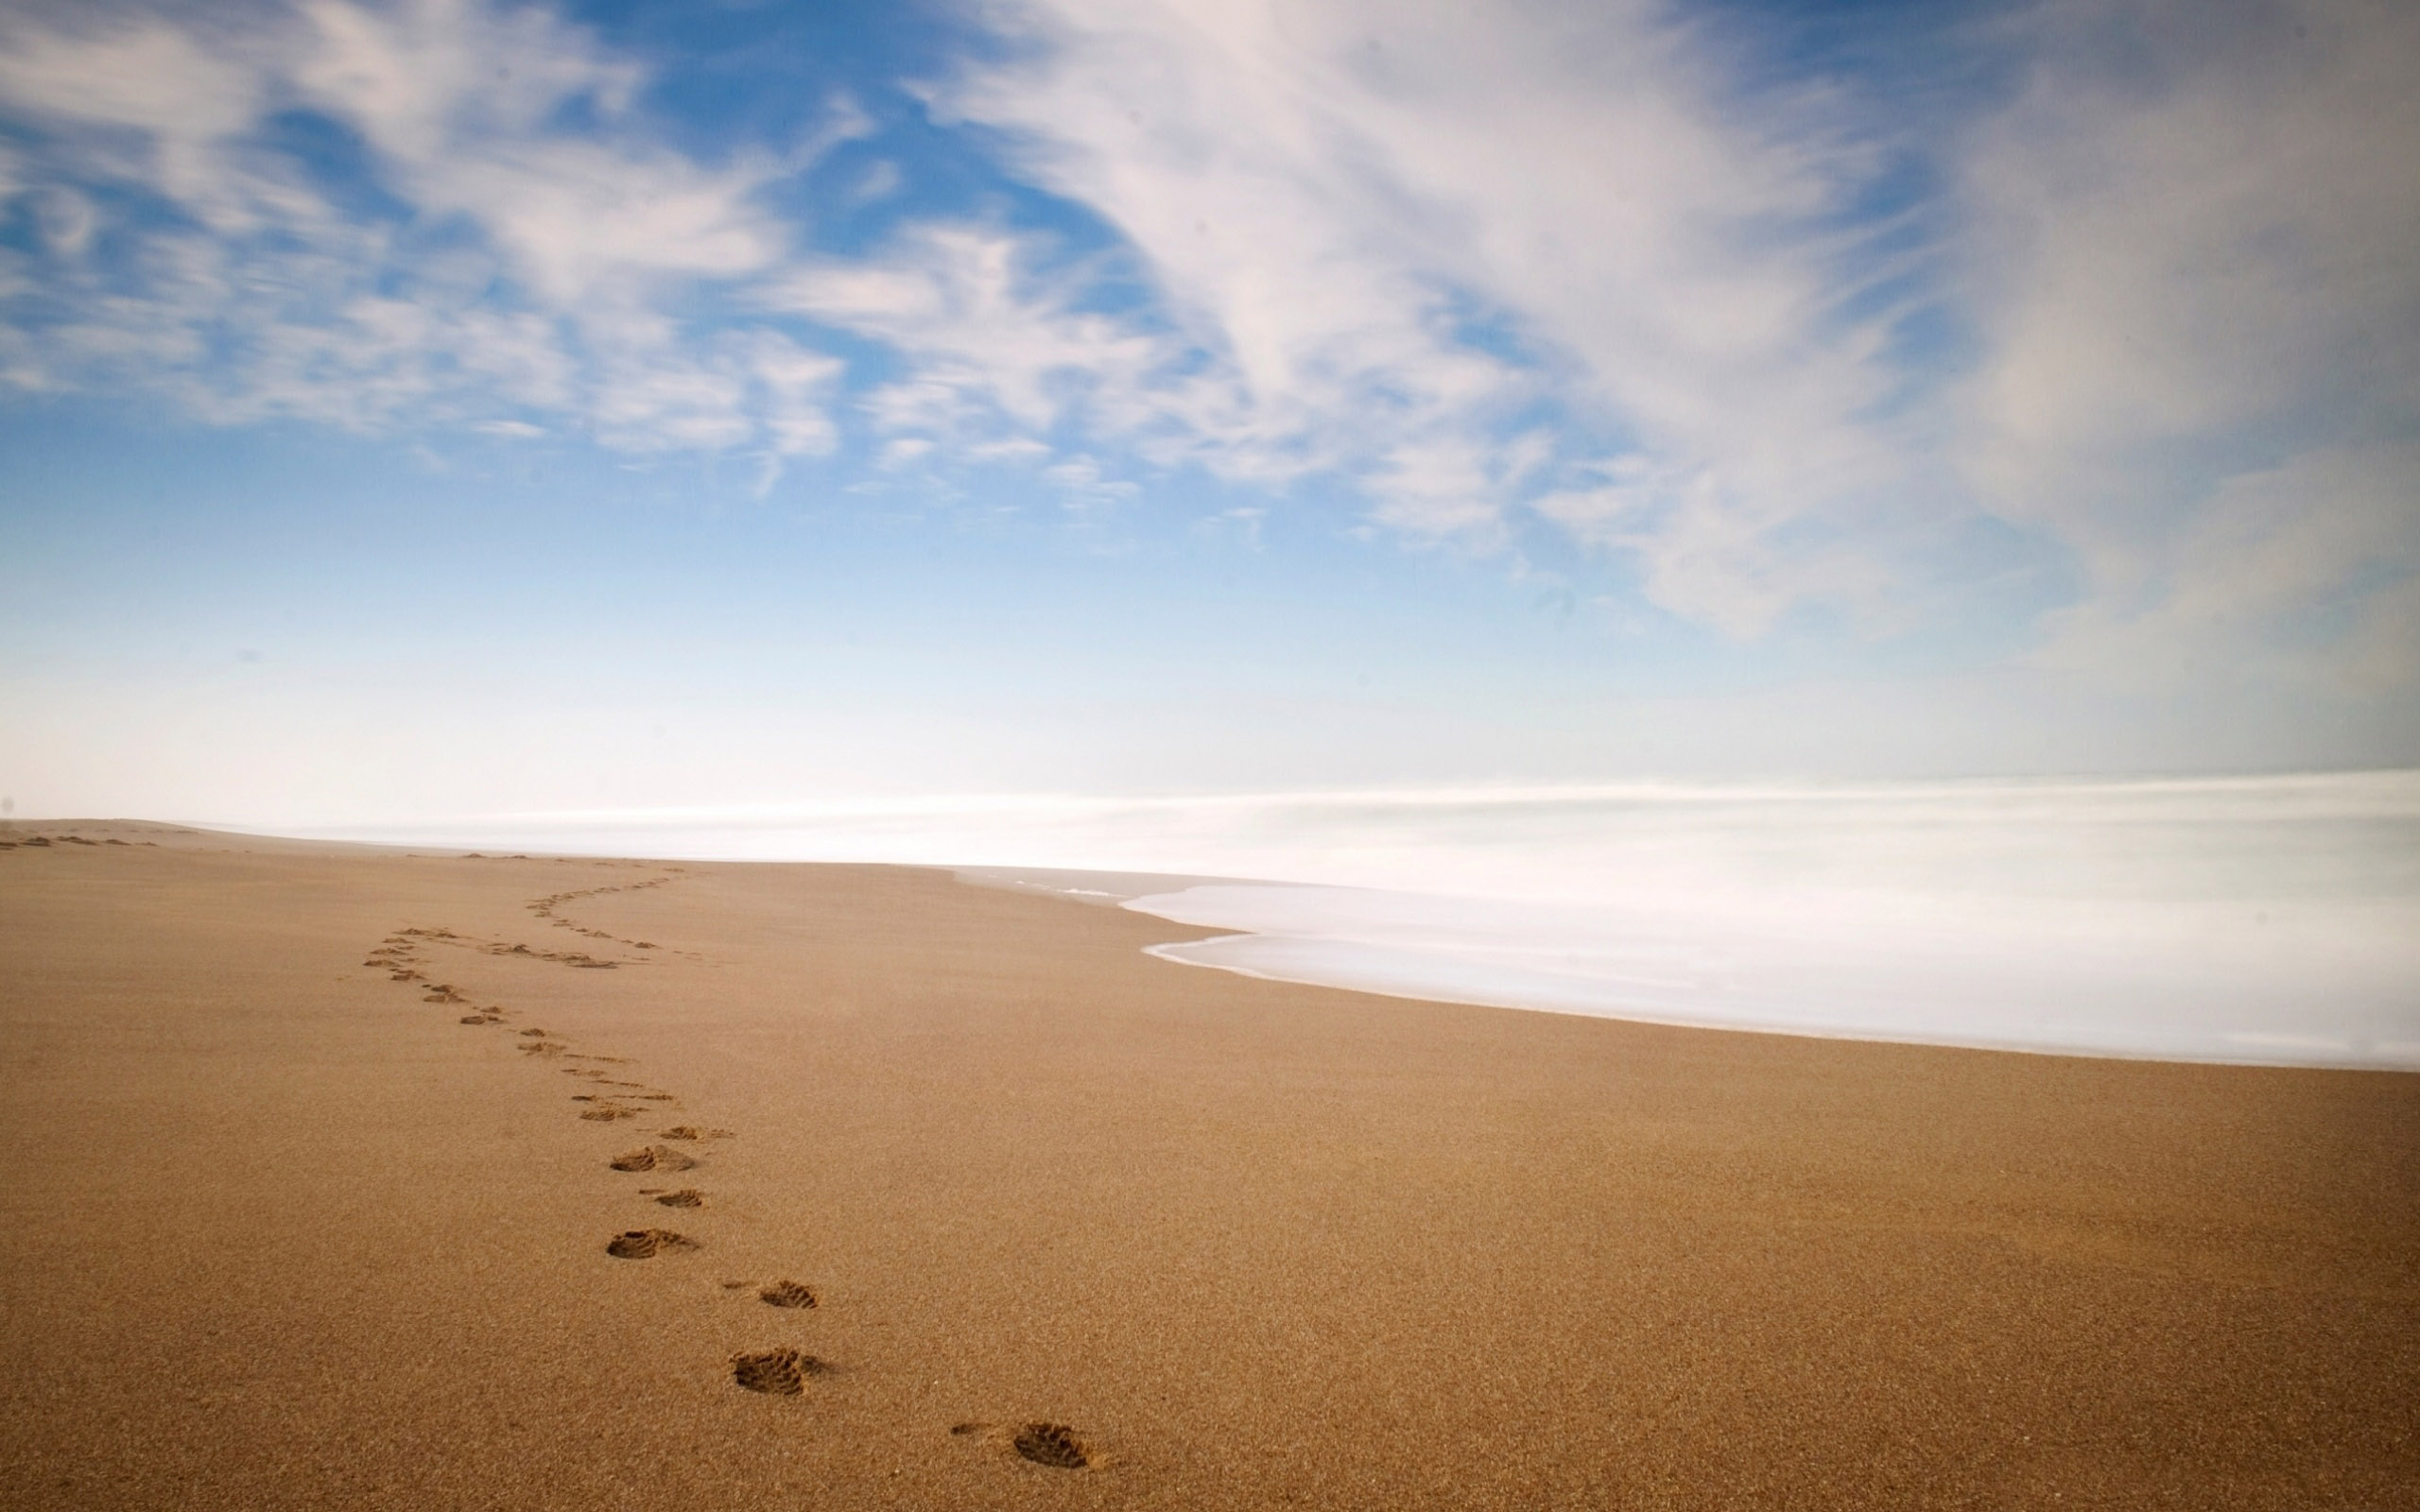 Footprints Background